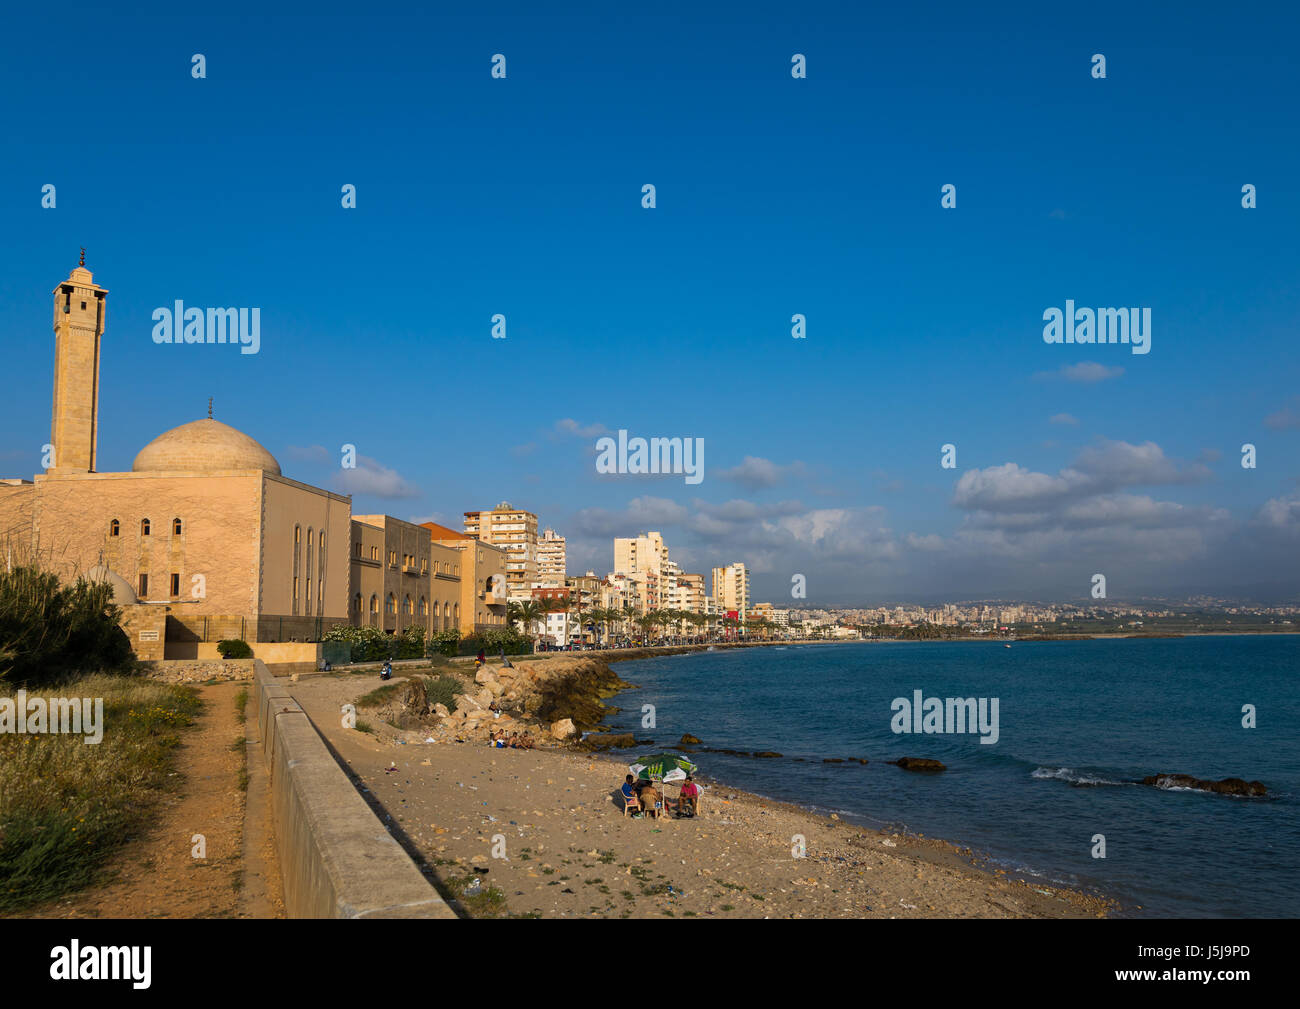 Mosque and cityscape, South Governorate, Tyre, Lebanon - Stock-Bilder